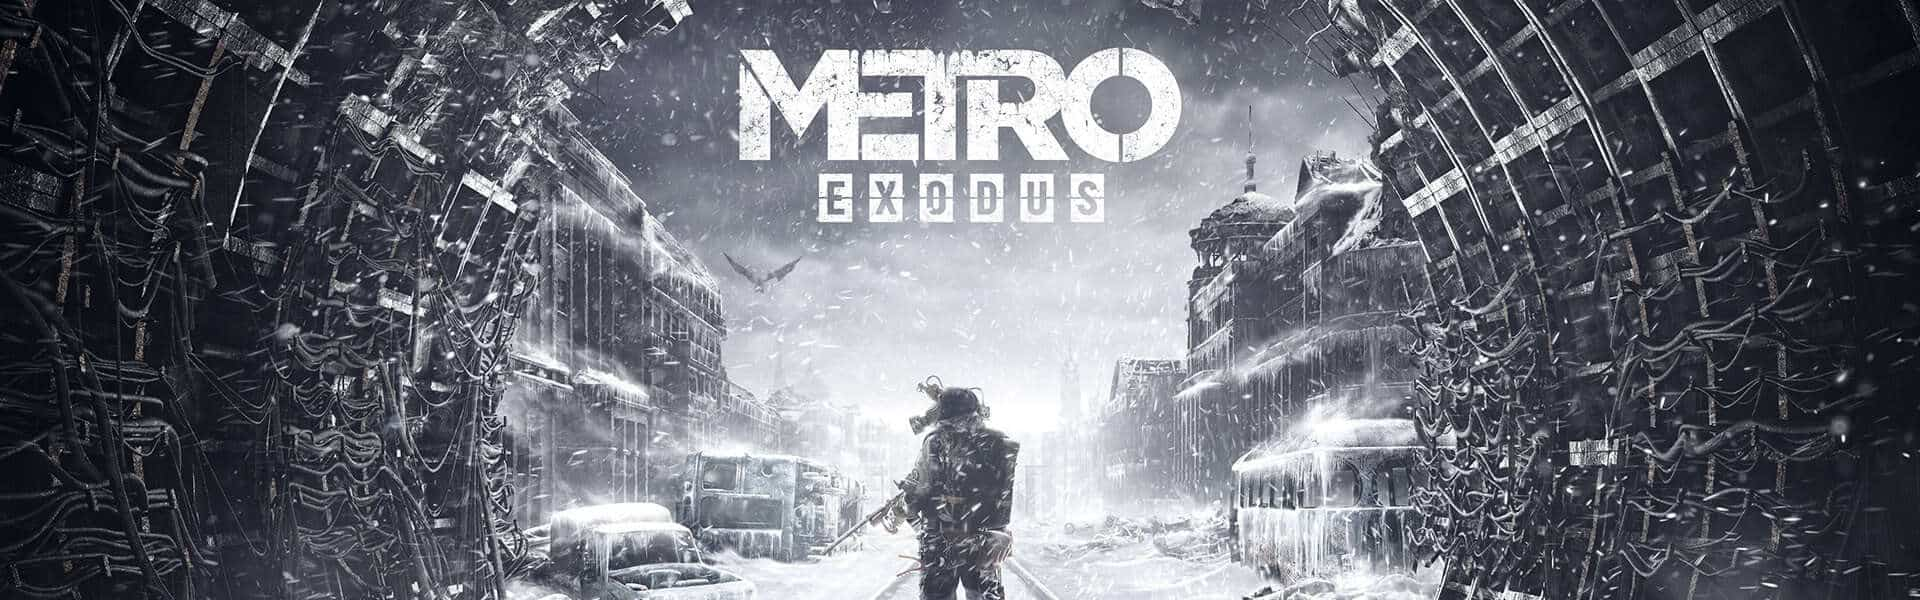 Metro 2019 game releases